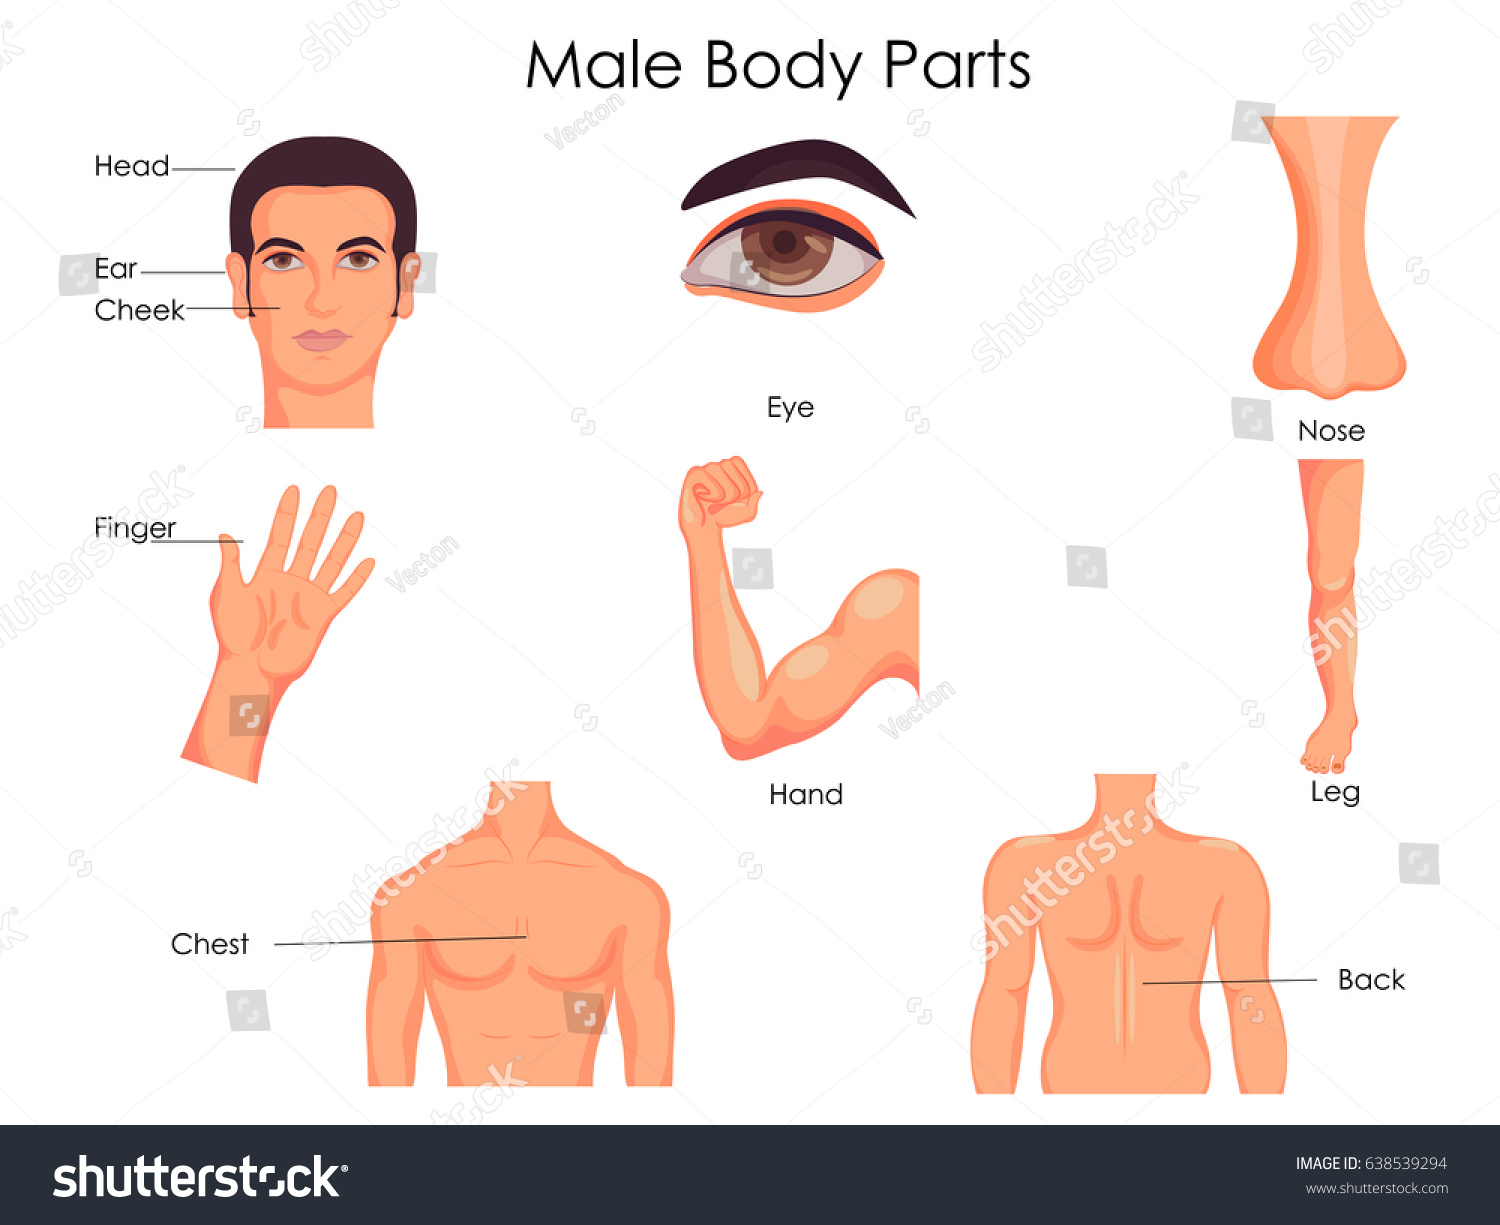 Medical education chart biology male body stock vector 638539294 medical education chart of biology for male body parts diagram vector illustration pooptronica